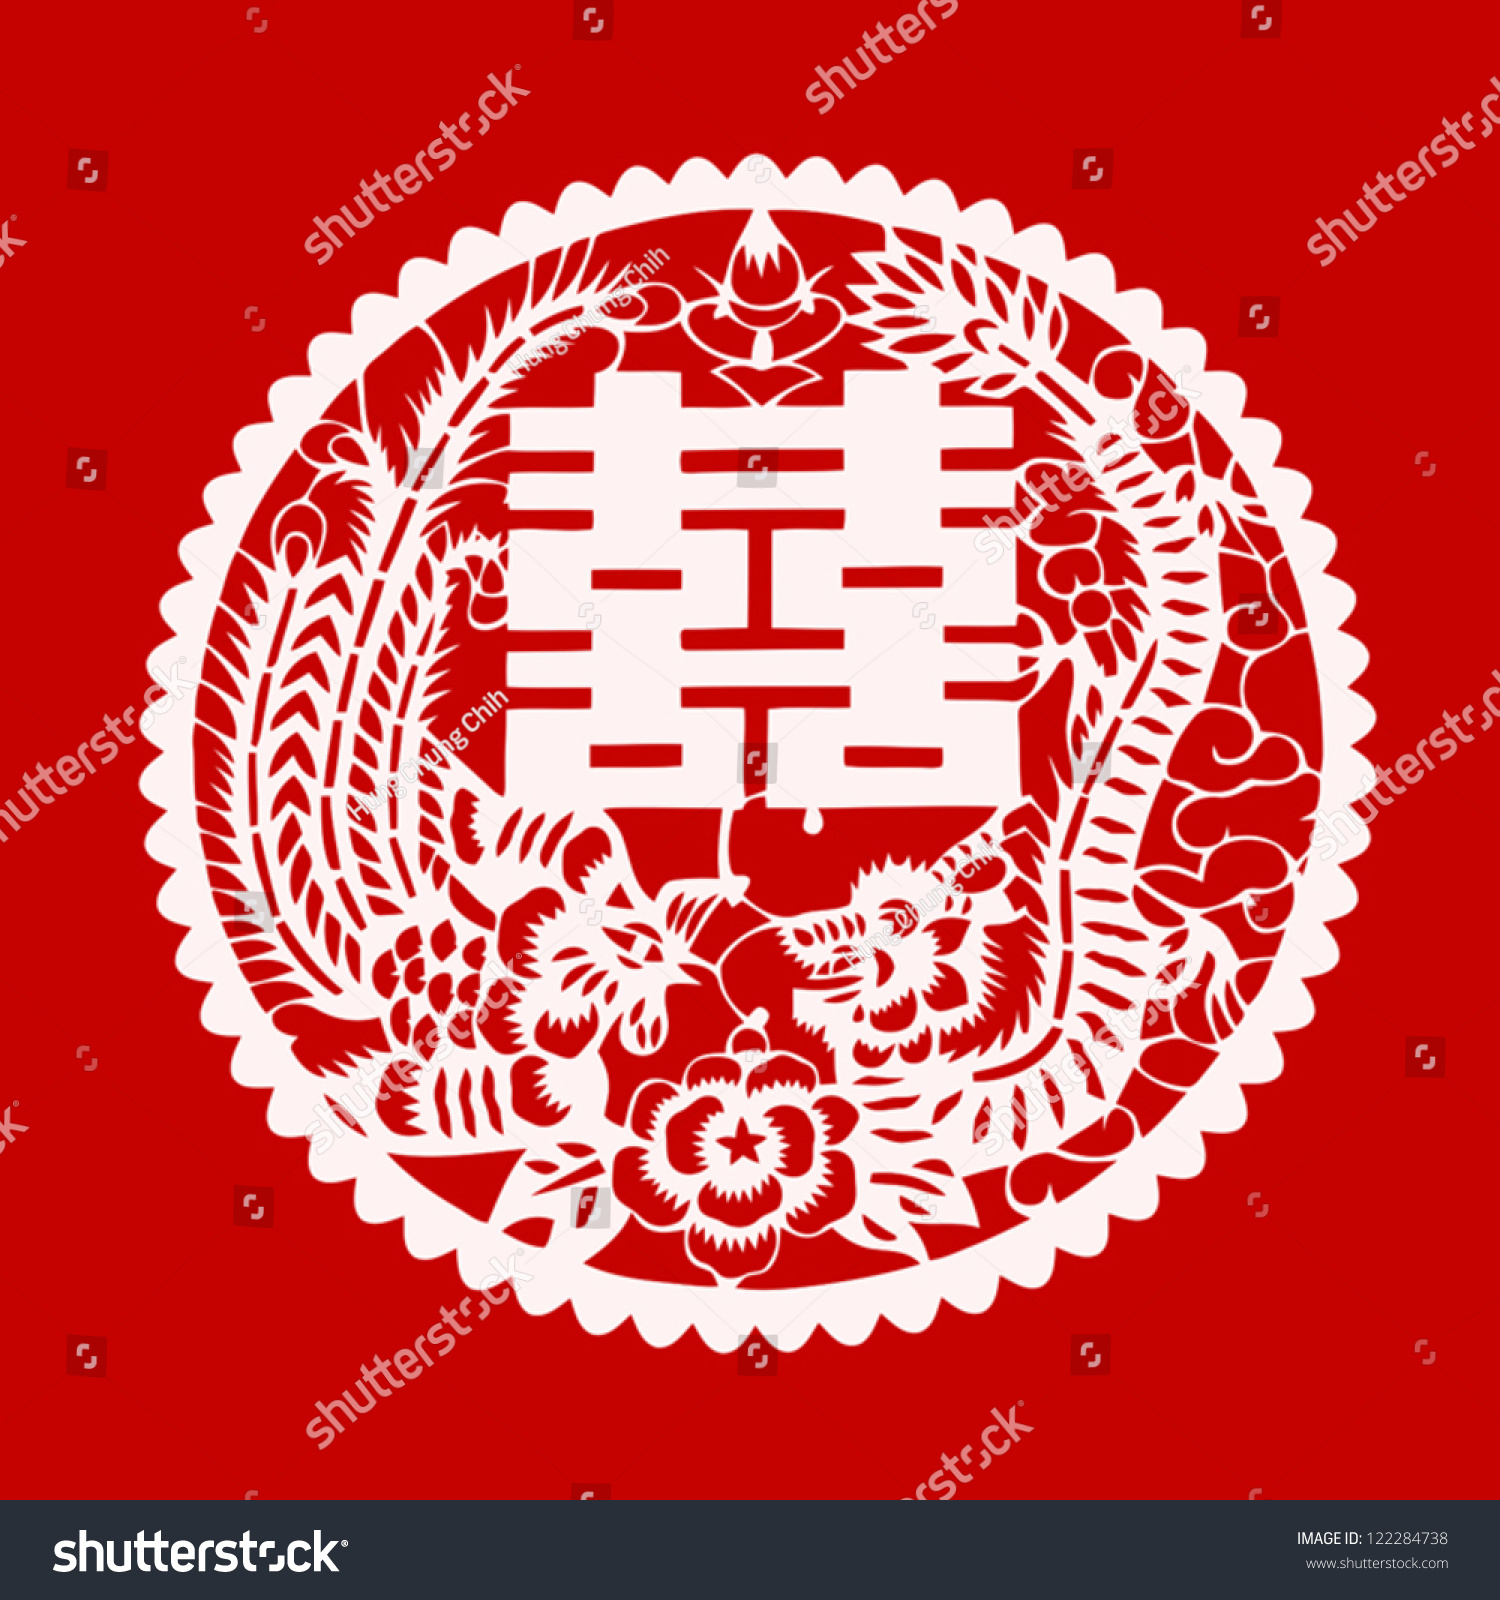 Double Happinesschinese Traditional Paper Cut Artthe Text In The